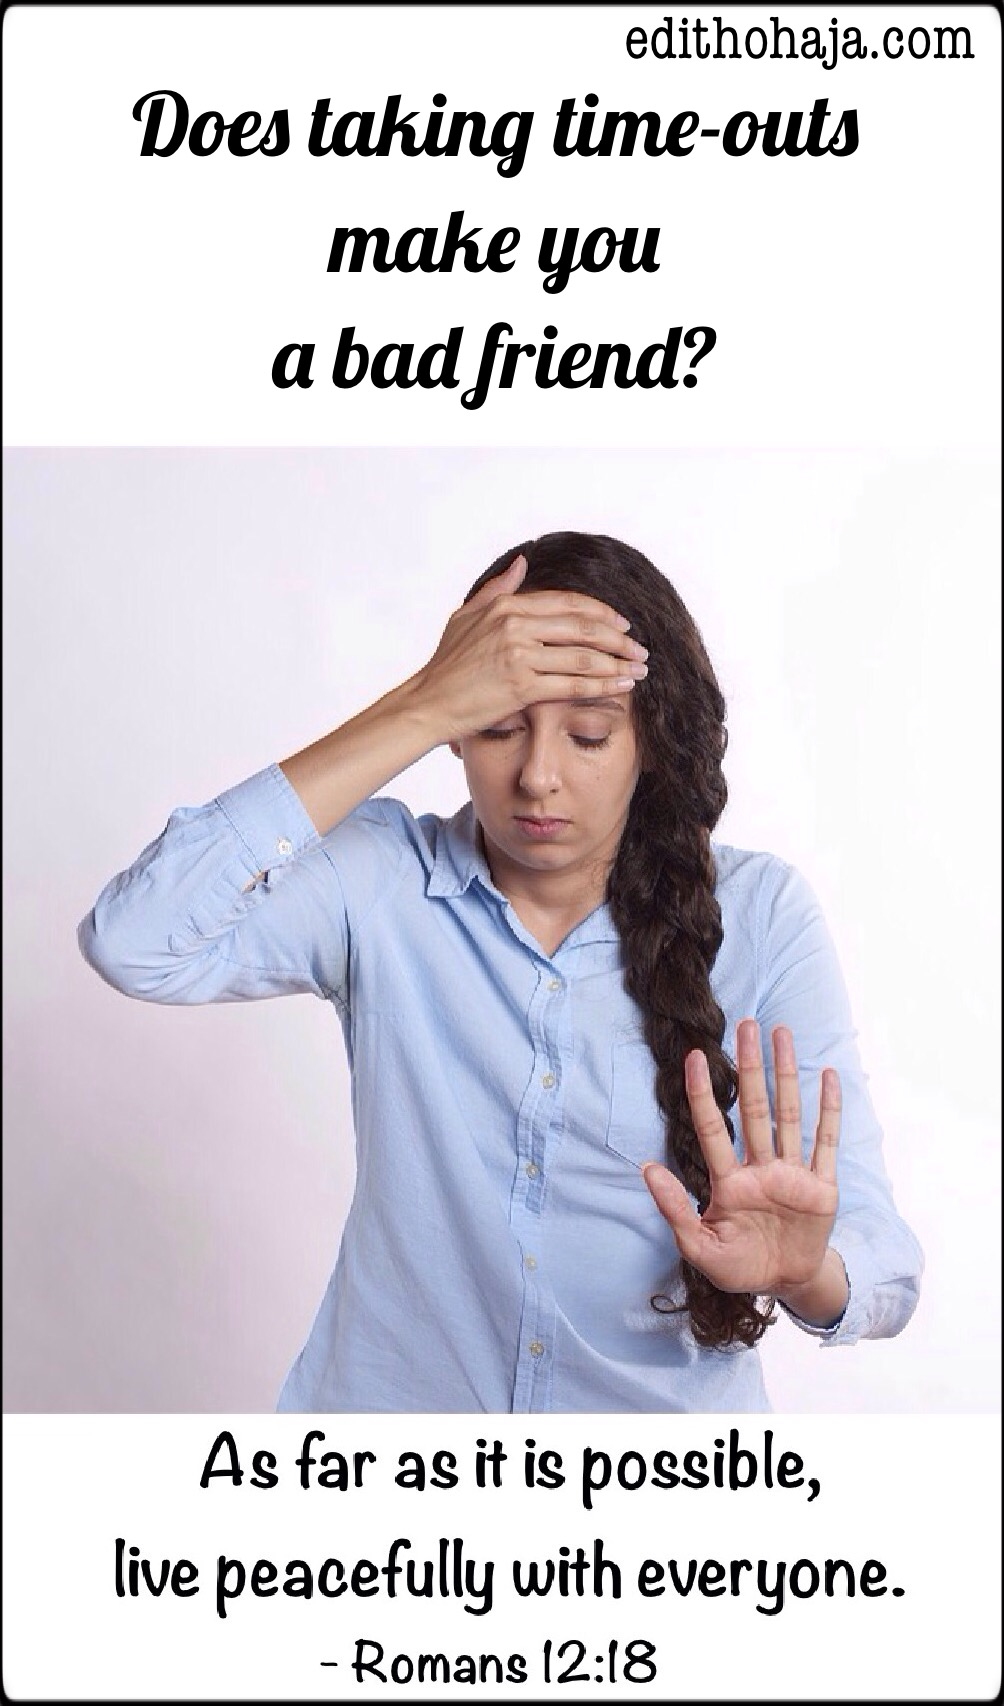 DOES TAKING TIME-OUTS IN A RELATIONSHIP MAKE YOU A BAD FRIEND?